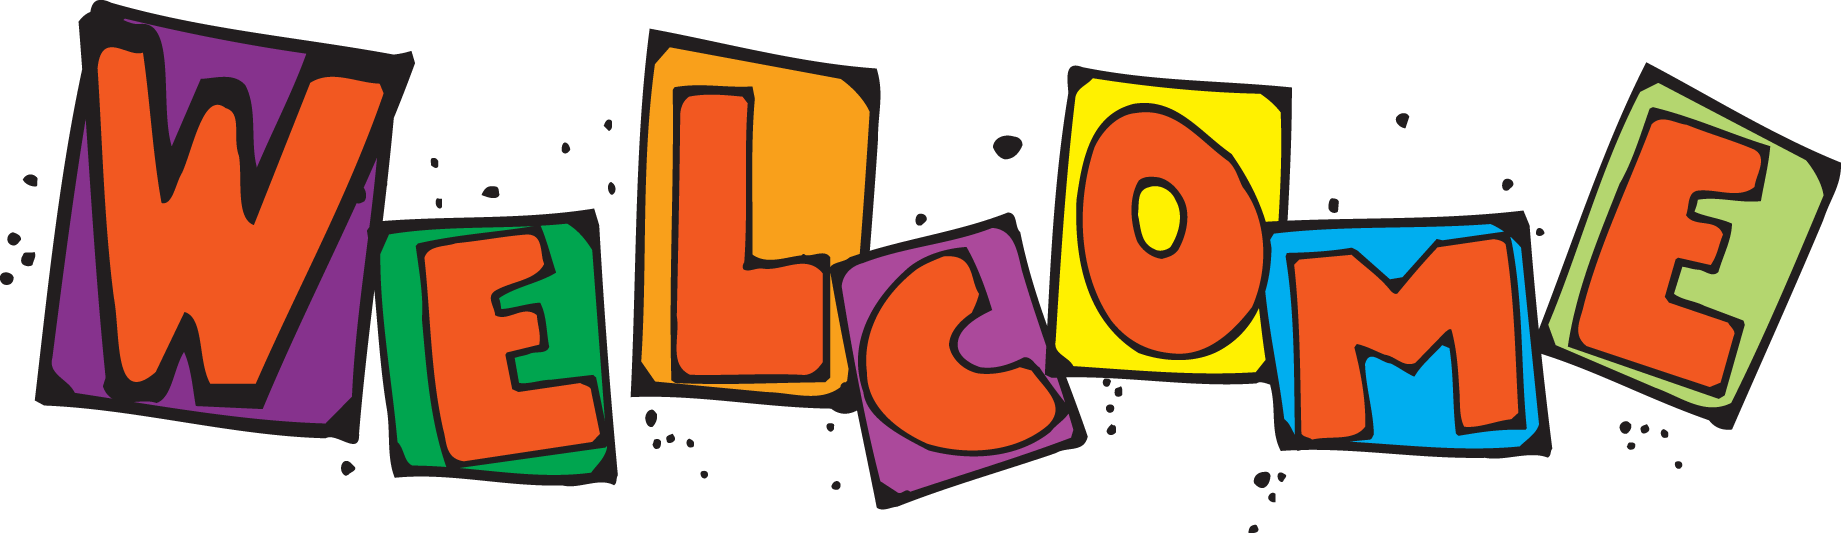 Welcome back clipart animated pluspng - Animated Welcome Back PNG